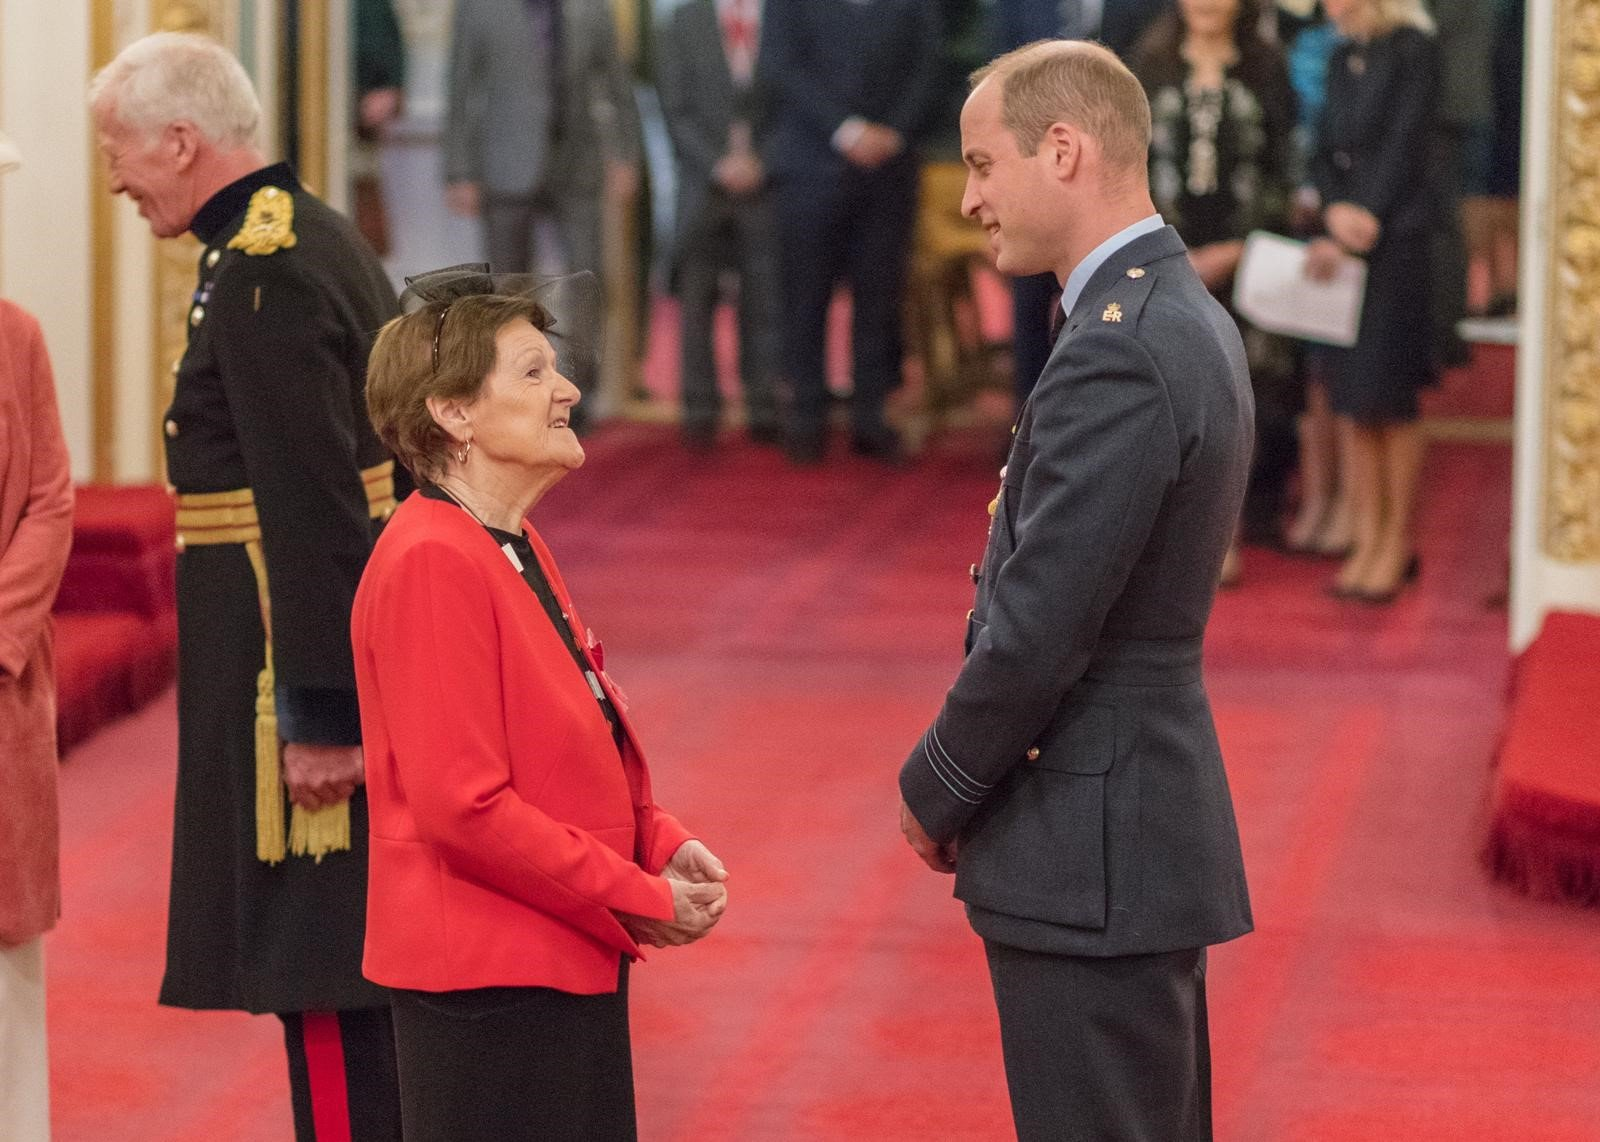 anne-mcewan-obe-investiture-duke-cambridge (4)